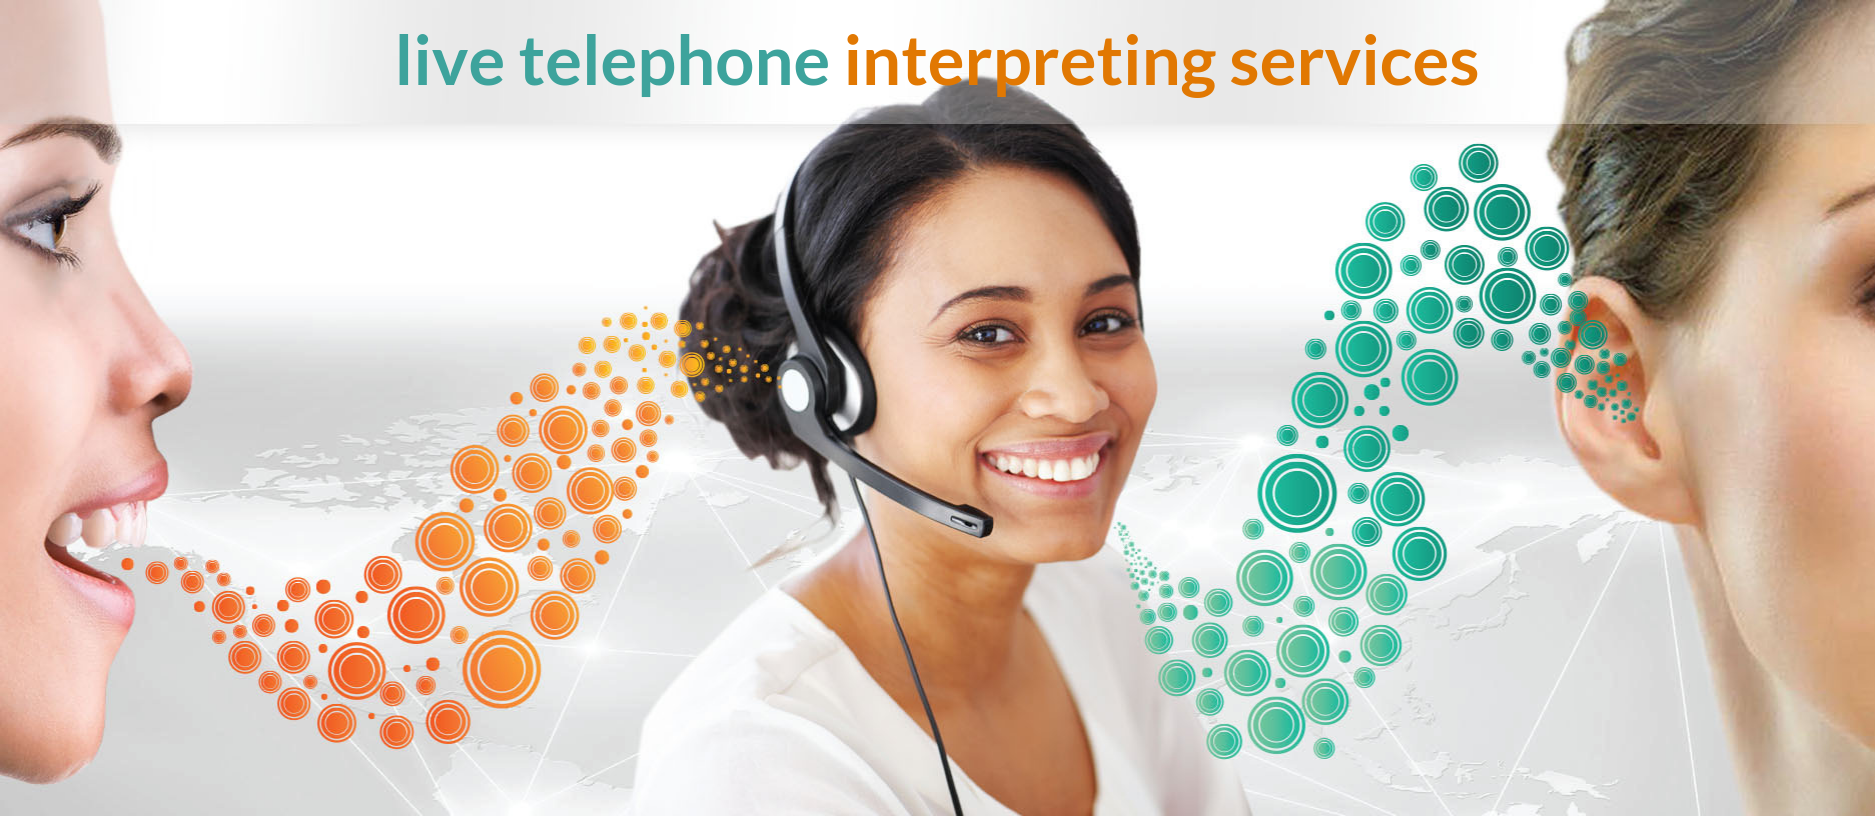 Ablio launches telephone interpreting services in Brazil